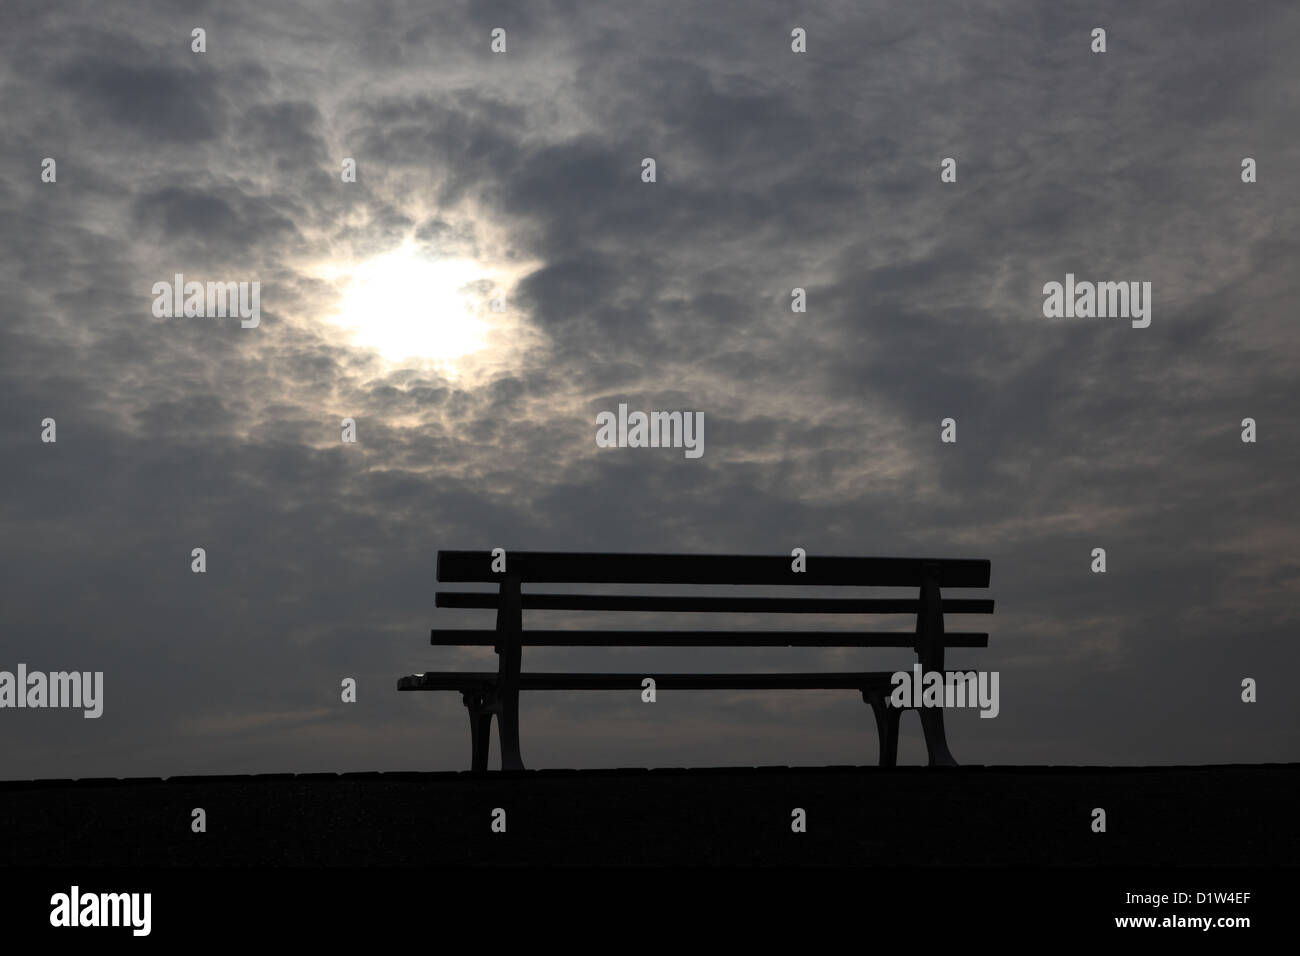 Hanover, silhouette, empty park bench in front of cloudy sky Stock Photo